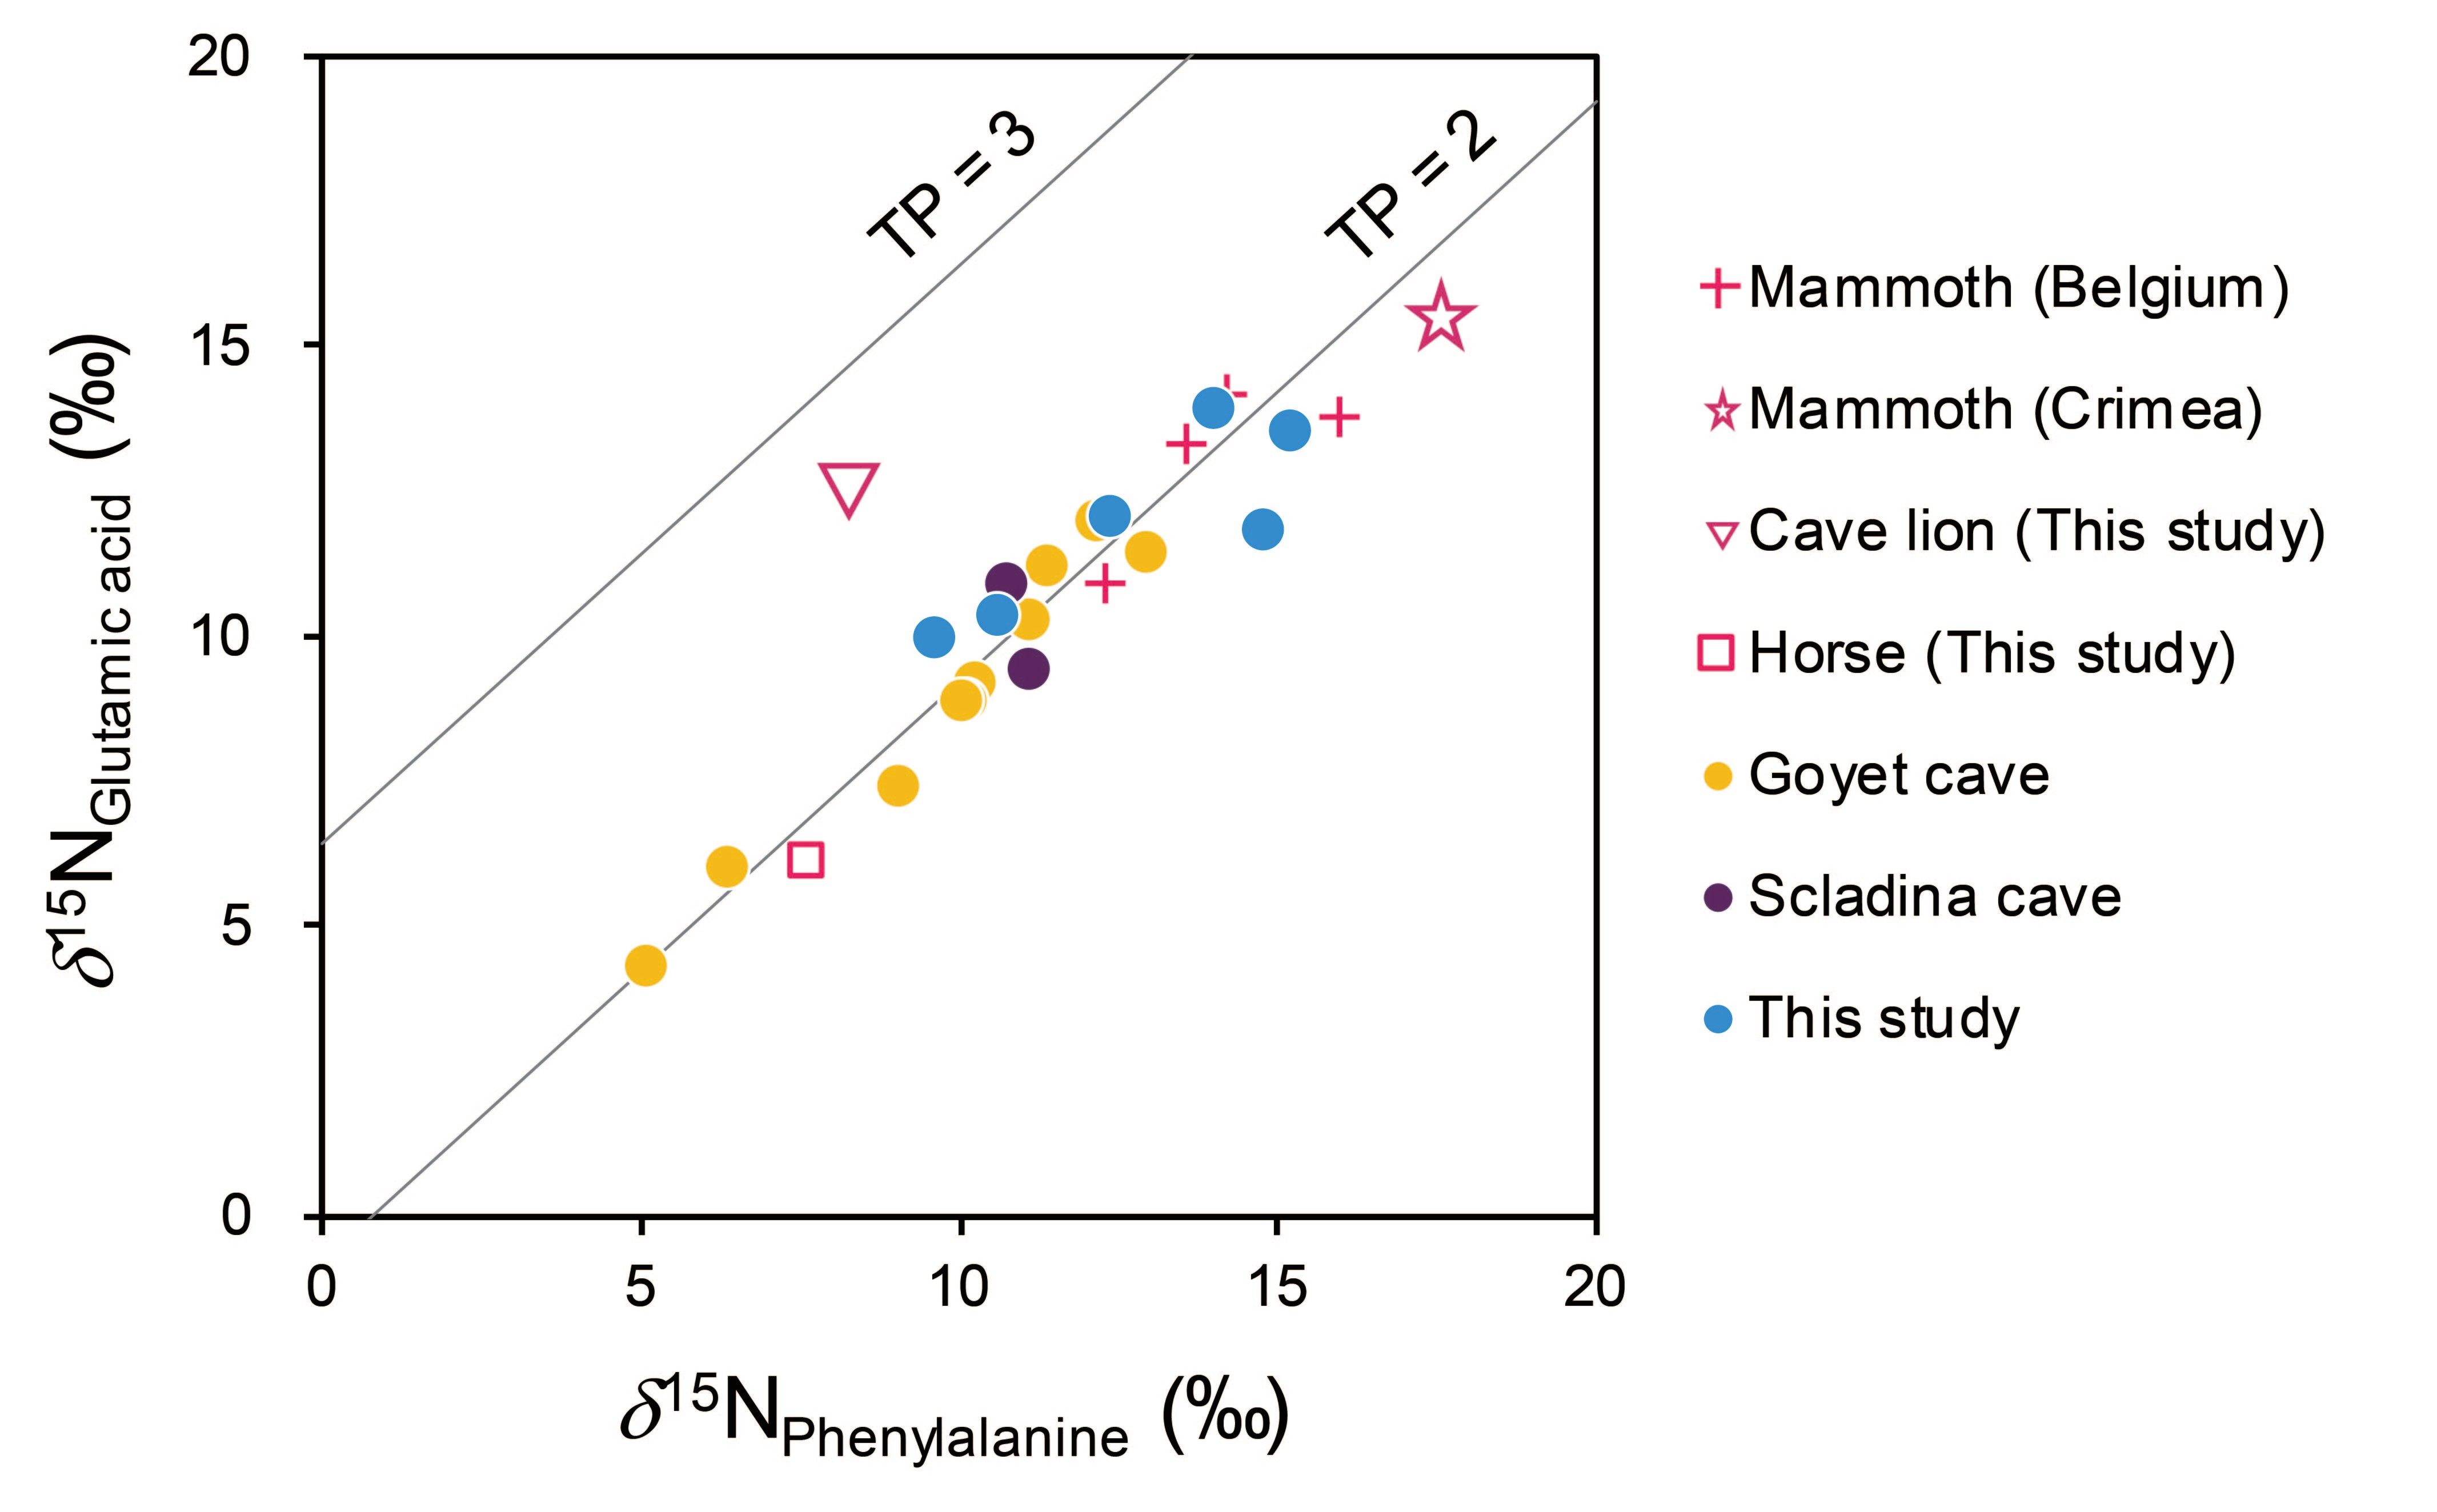 Nitrogen isotopic composition of glutamic acid and phenylalanine of the cave bears and reference animals from Romania and other regions in Europe. The solid lines of TP = 2 and TP = 3 indicate theoretical combinations of these two values for primary consumers (herbivores) and secondary consumers (carnivores), respectively, in terrestrial ecosystems (after Naito et al. 2020).